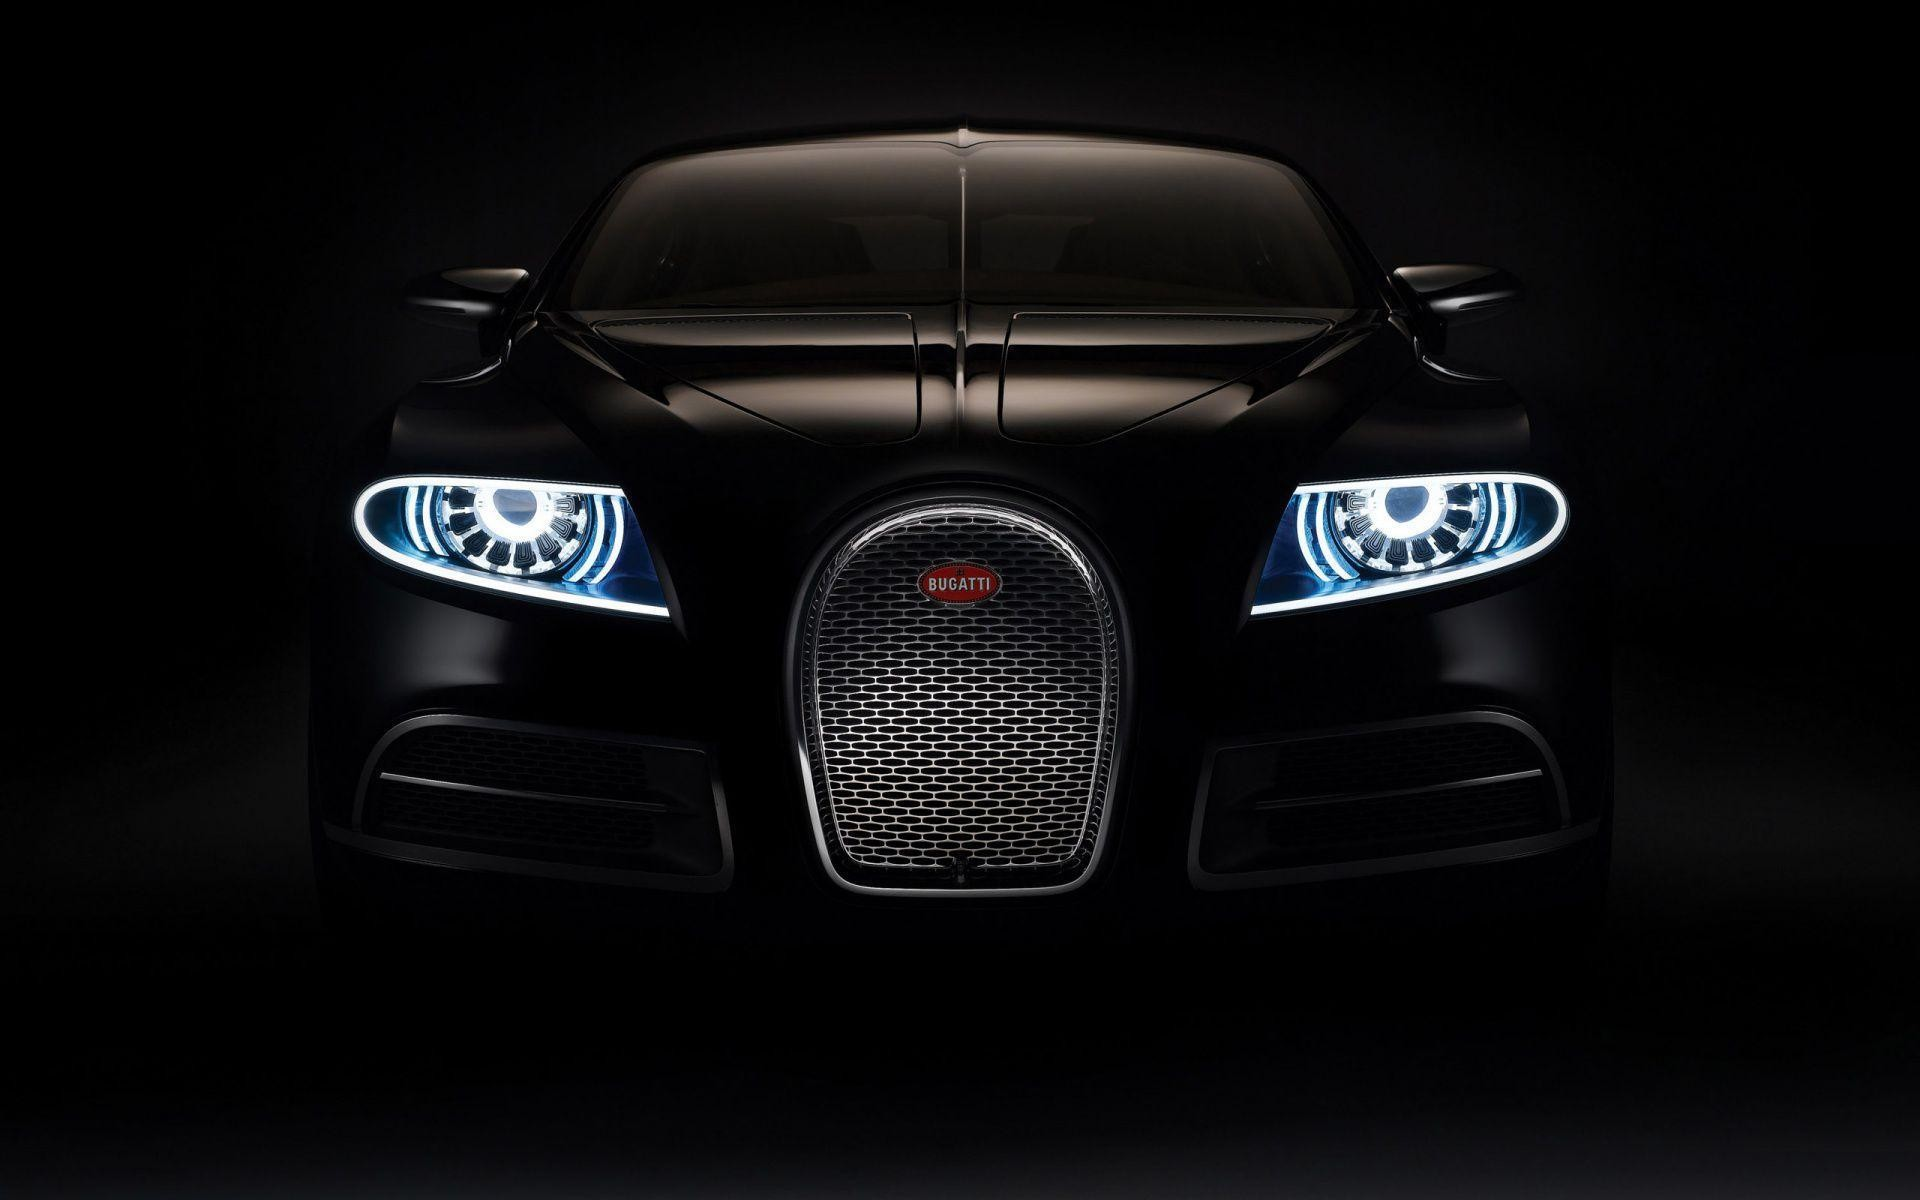 1920x1200 Car wallpaper black background | HD Fun Wallpapers